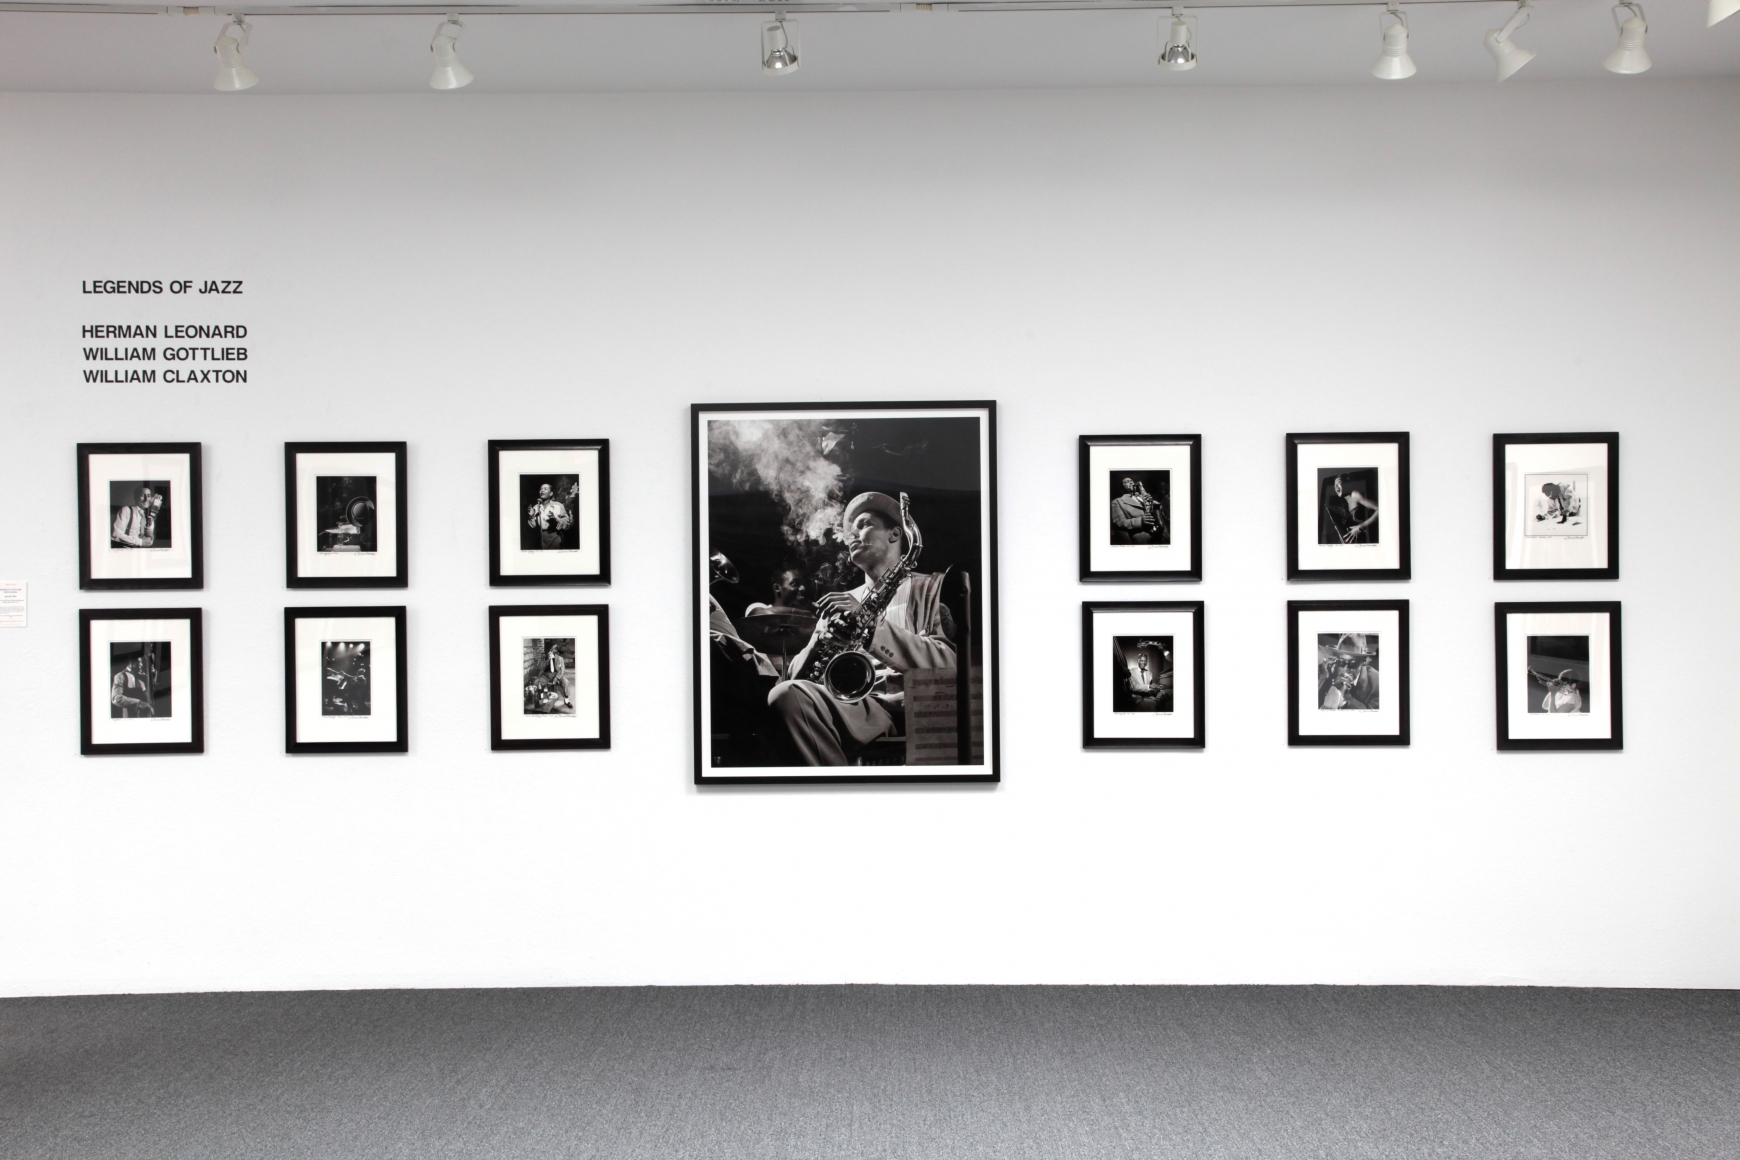 Legends of Jazz Photography - Exhibitions - Fahey Klein Gallery